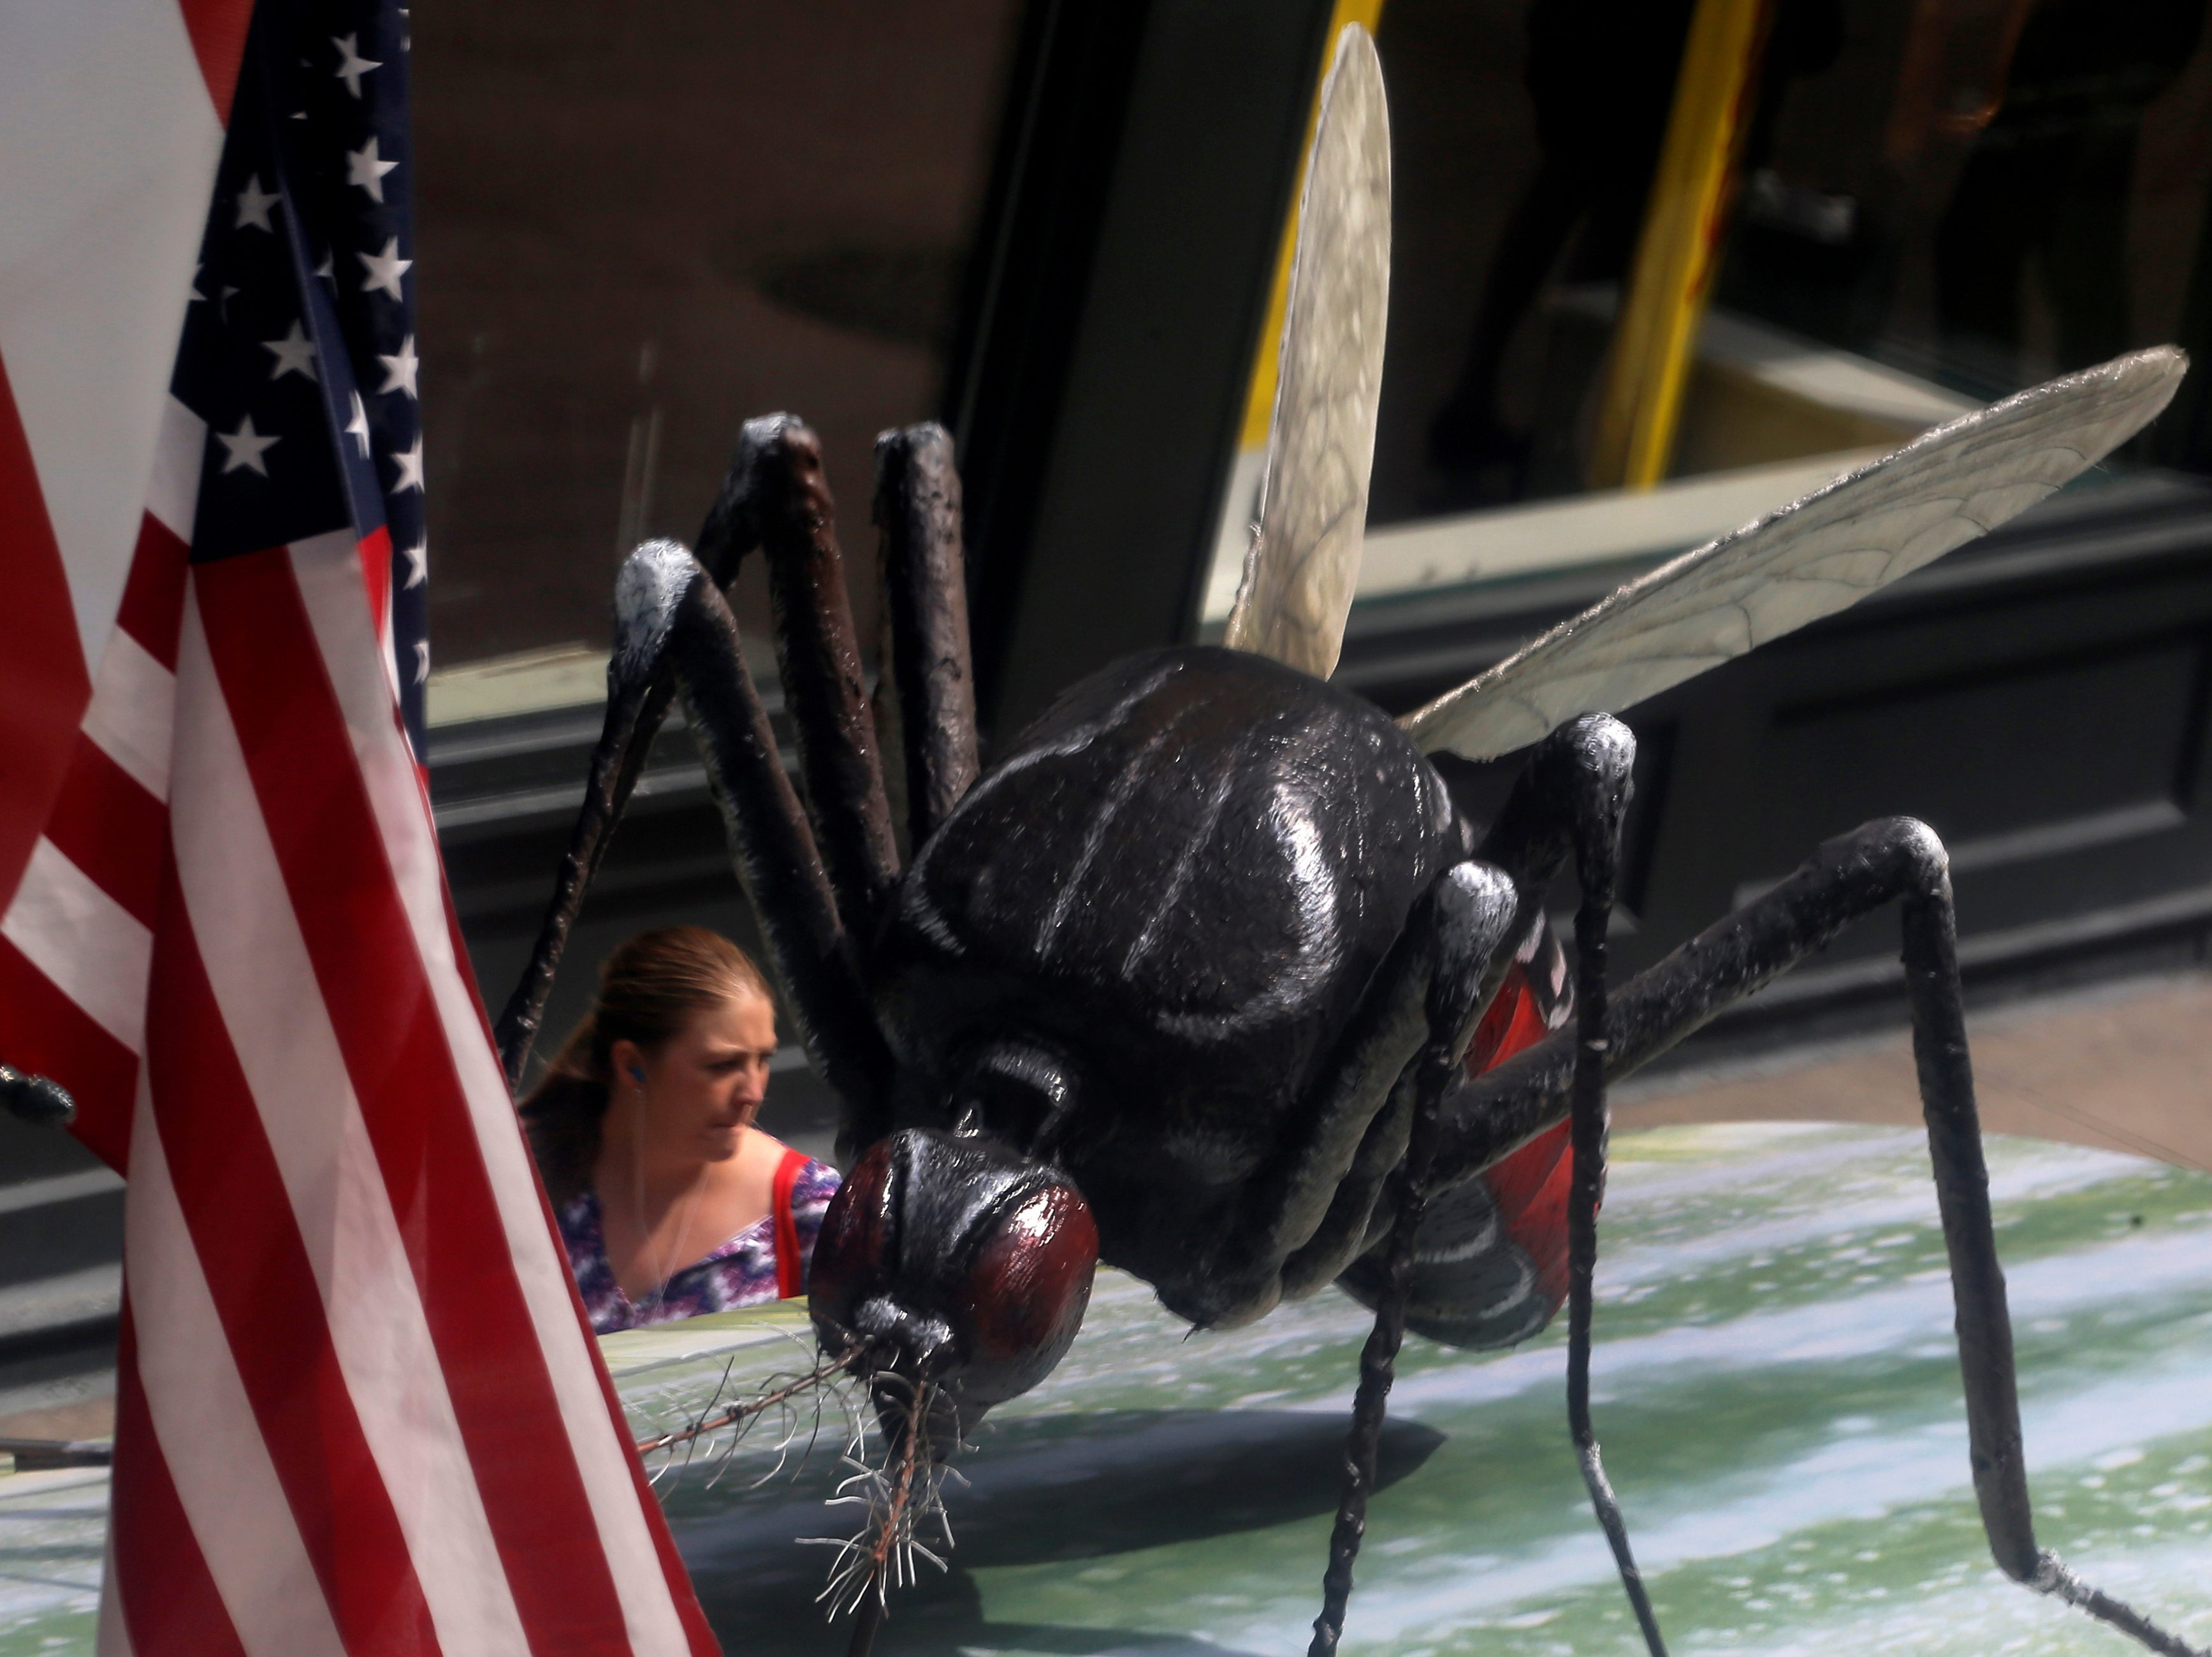 A woman walks past a giant fake mosquito placed on top of a bus shelter as part of an awareness campaign about the Zika virus in Chicago, Illinois, United States, May 16, 2016. REUTERS/Jim Young